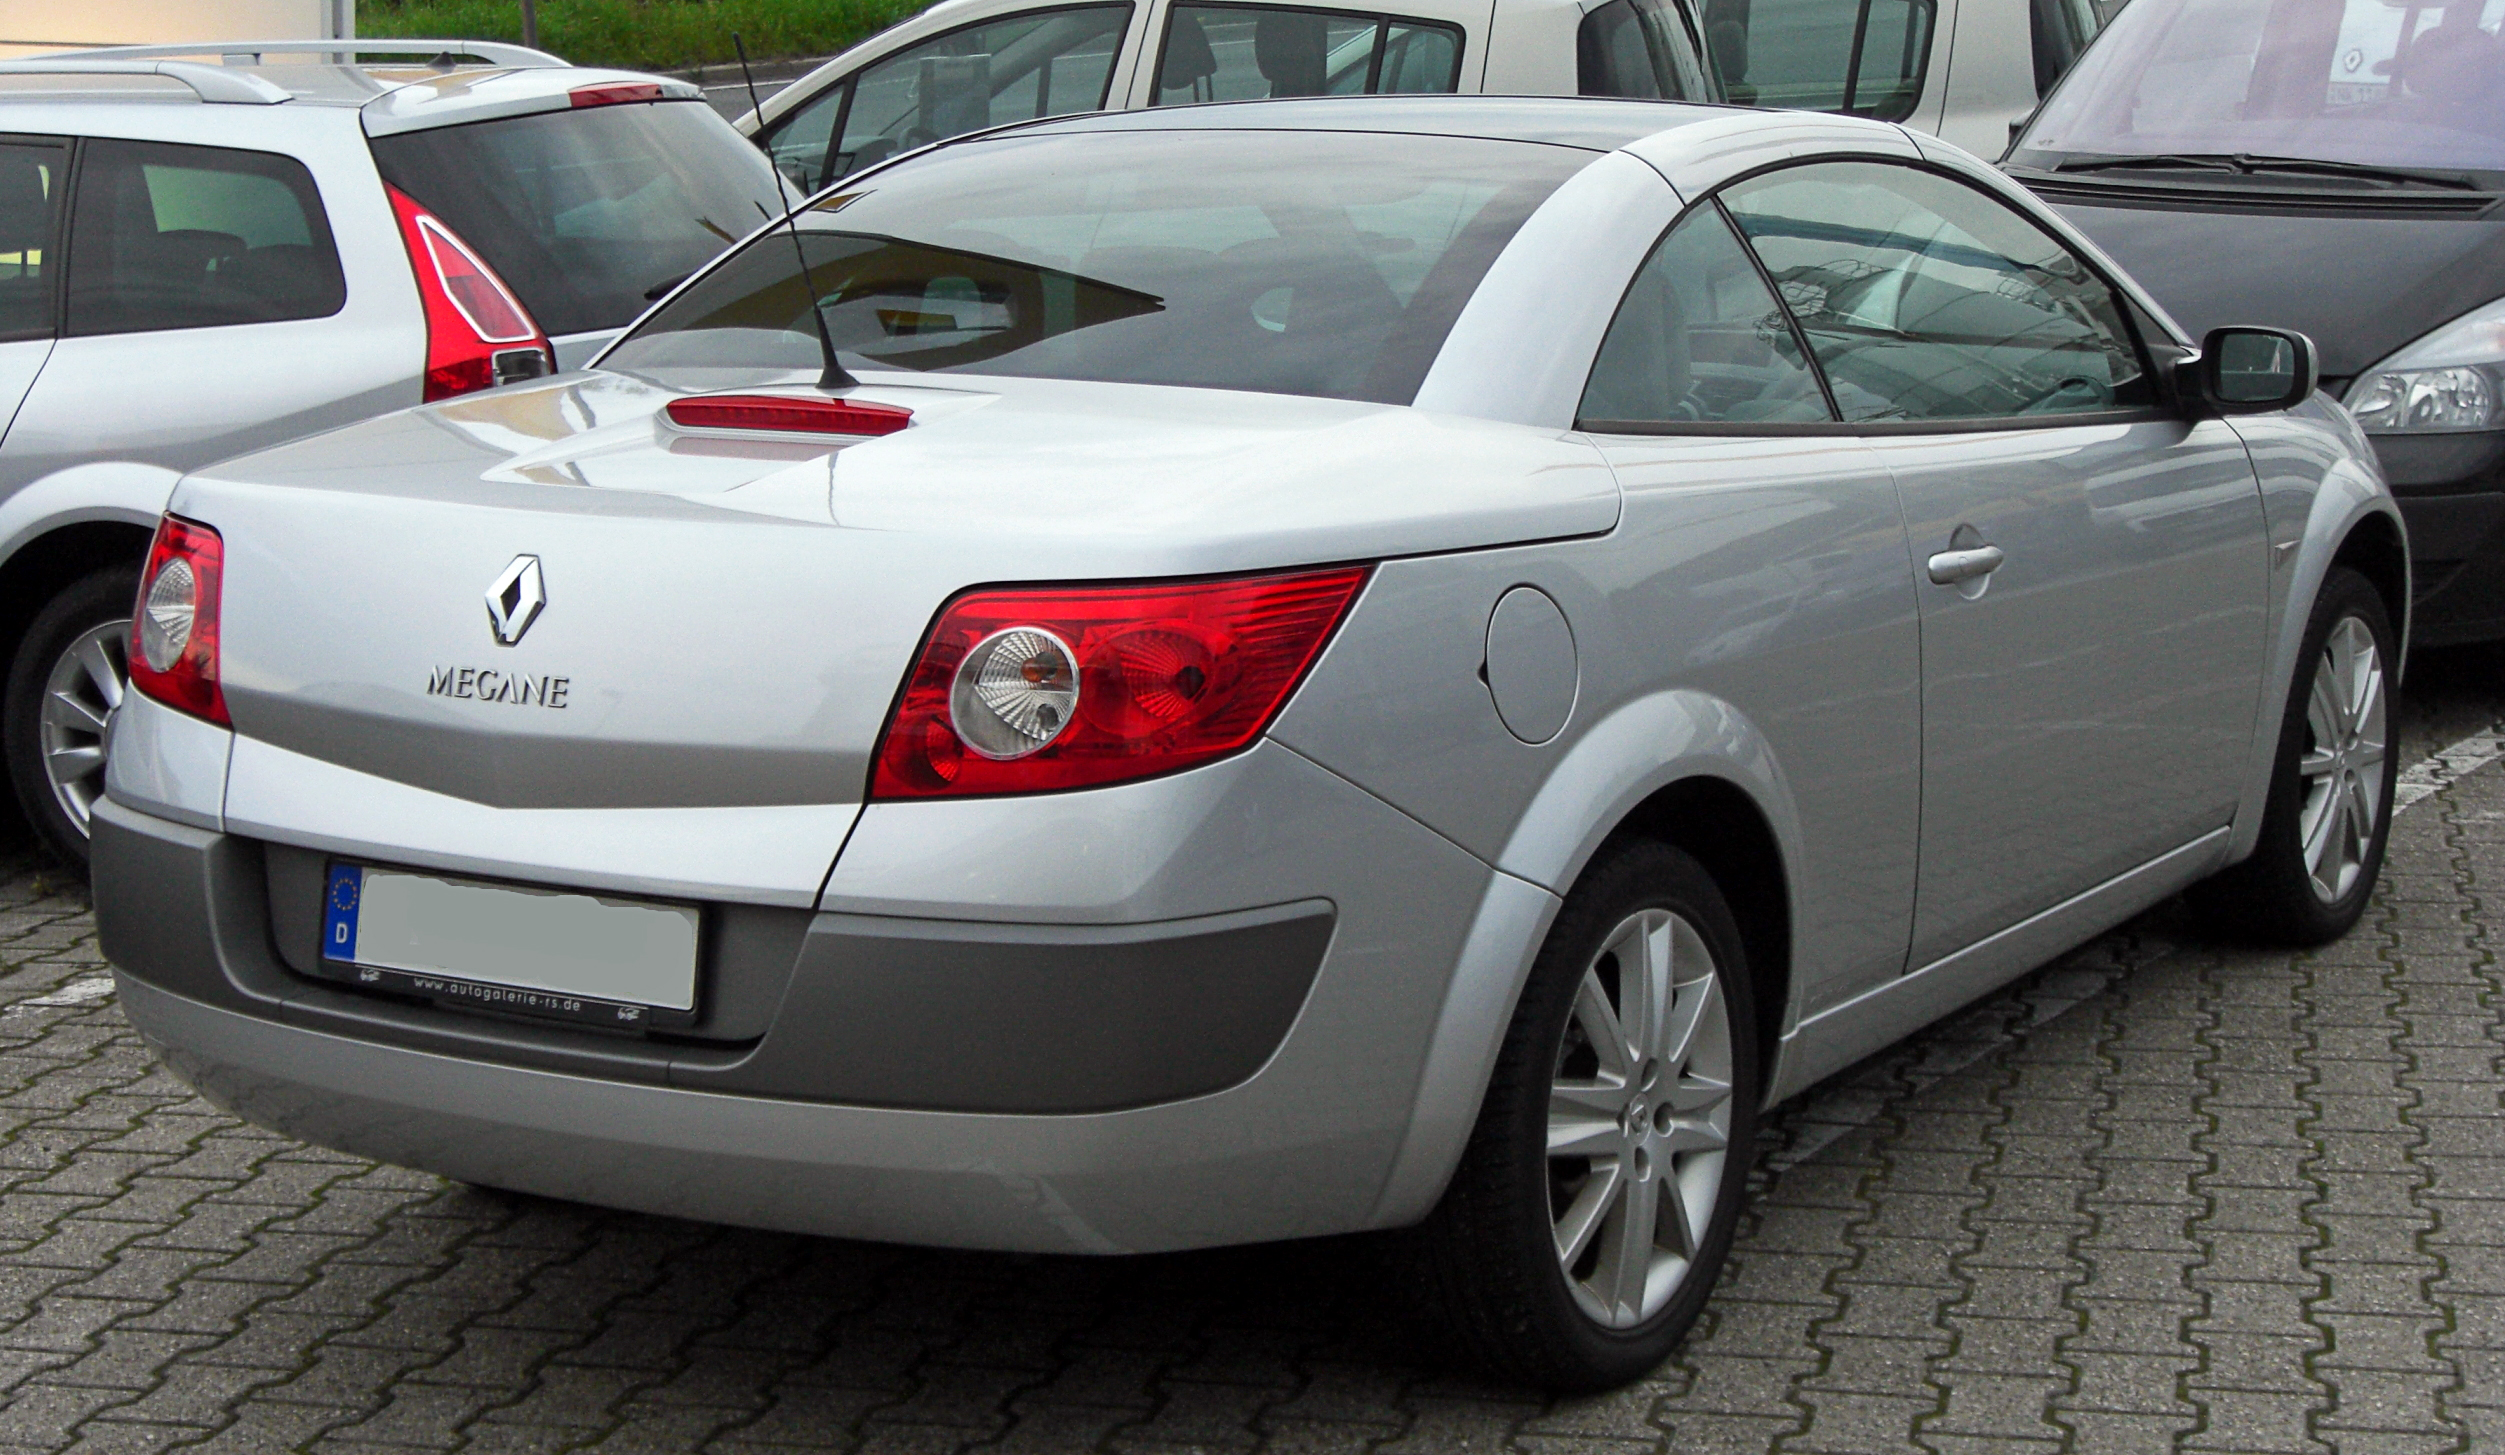 File Renault Megane Cc Rear Jpg Wikimedia Commons